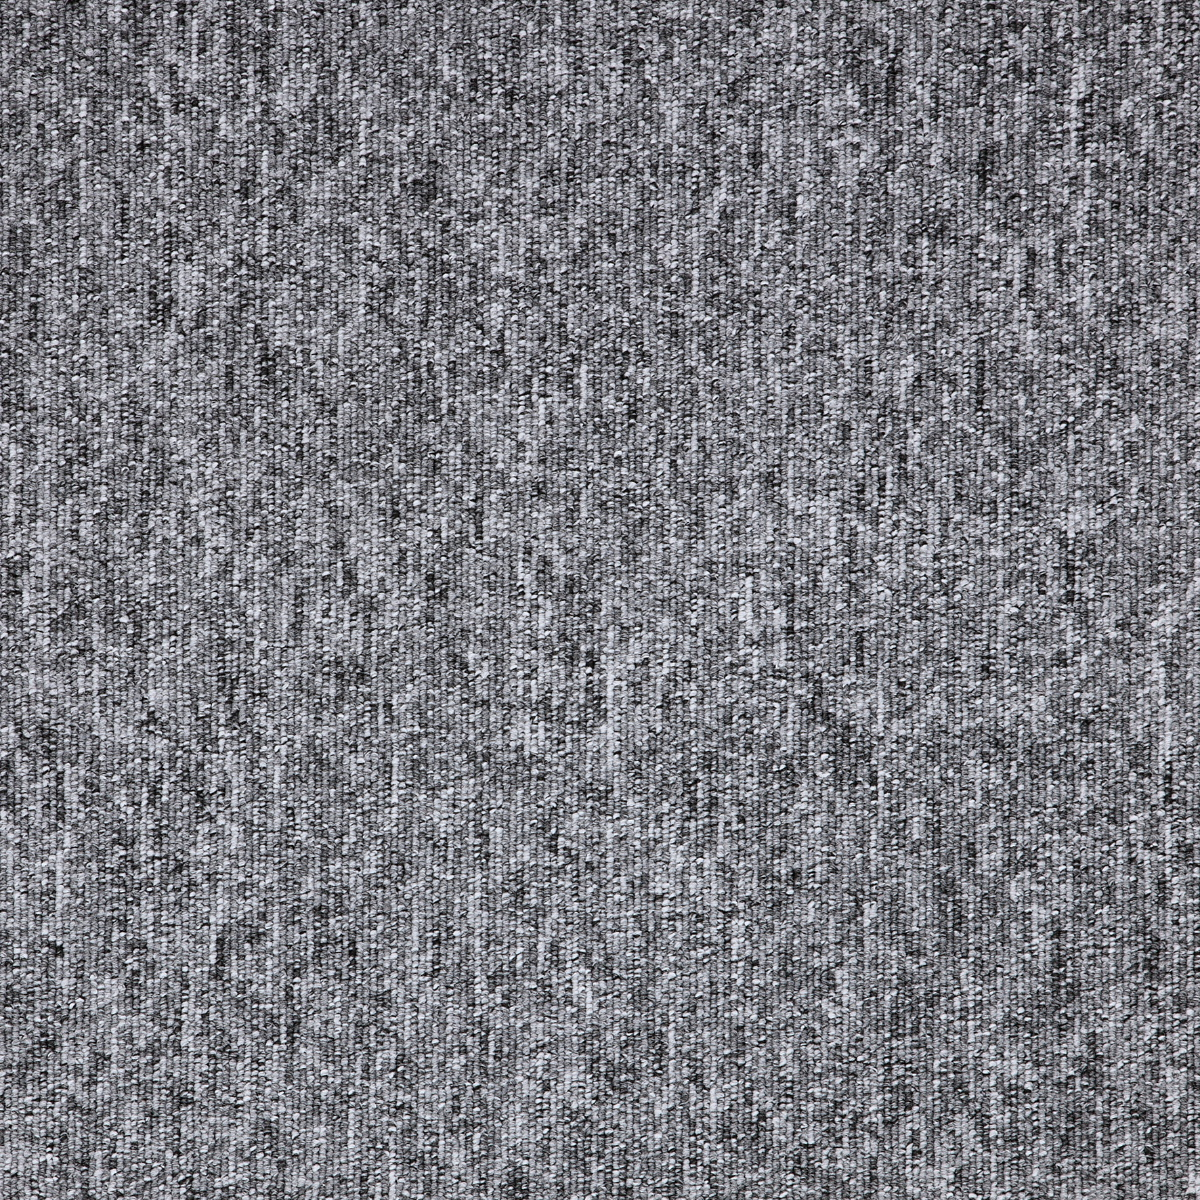 Kobercové čtverce Aspen Tile_Soft Grey